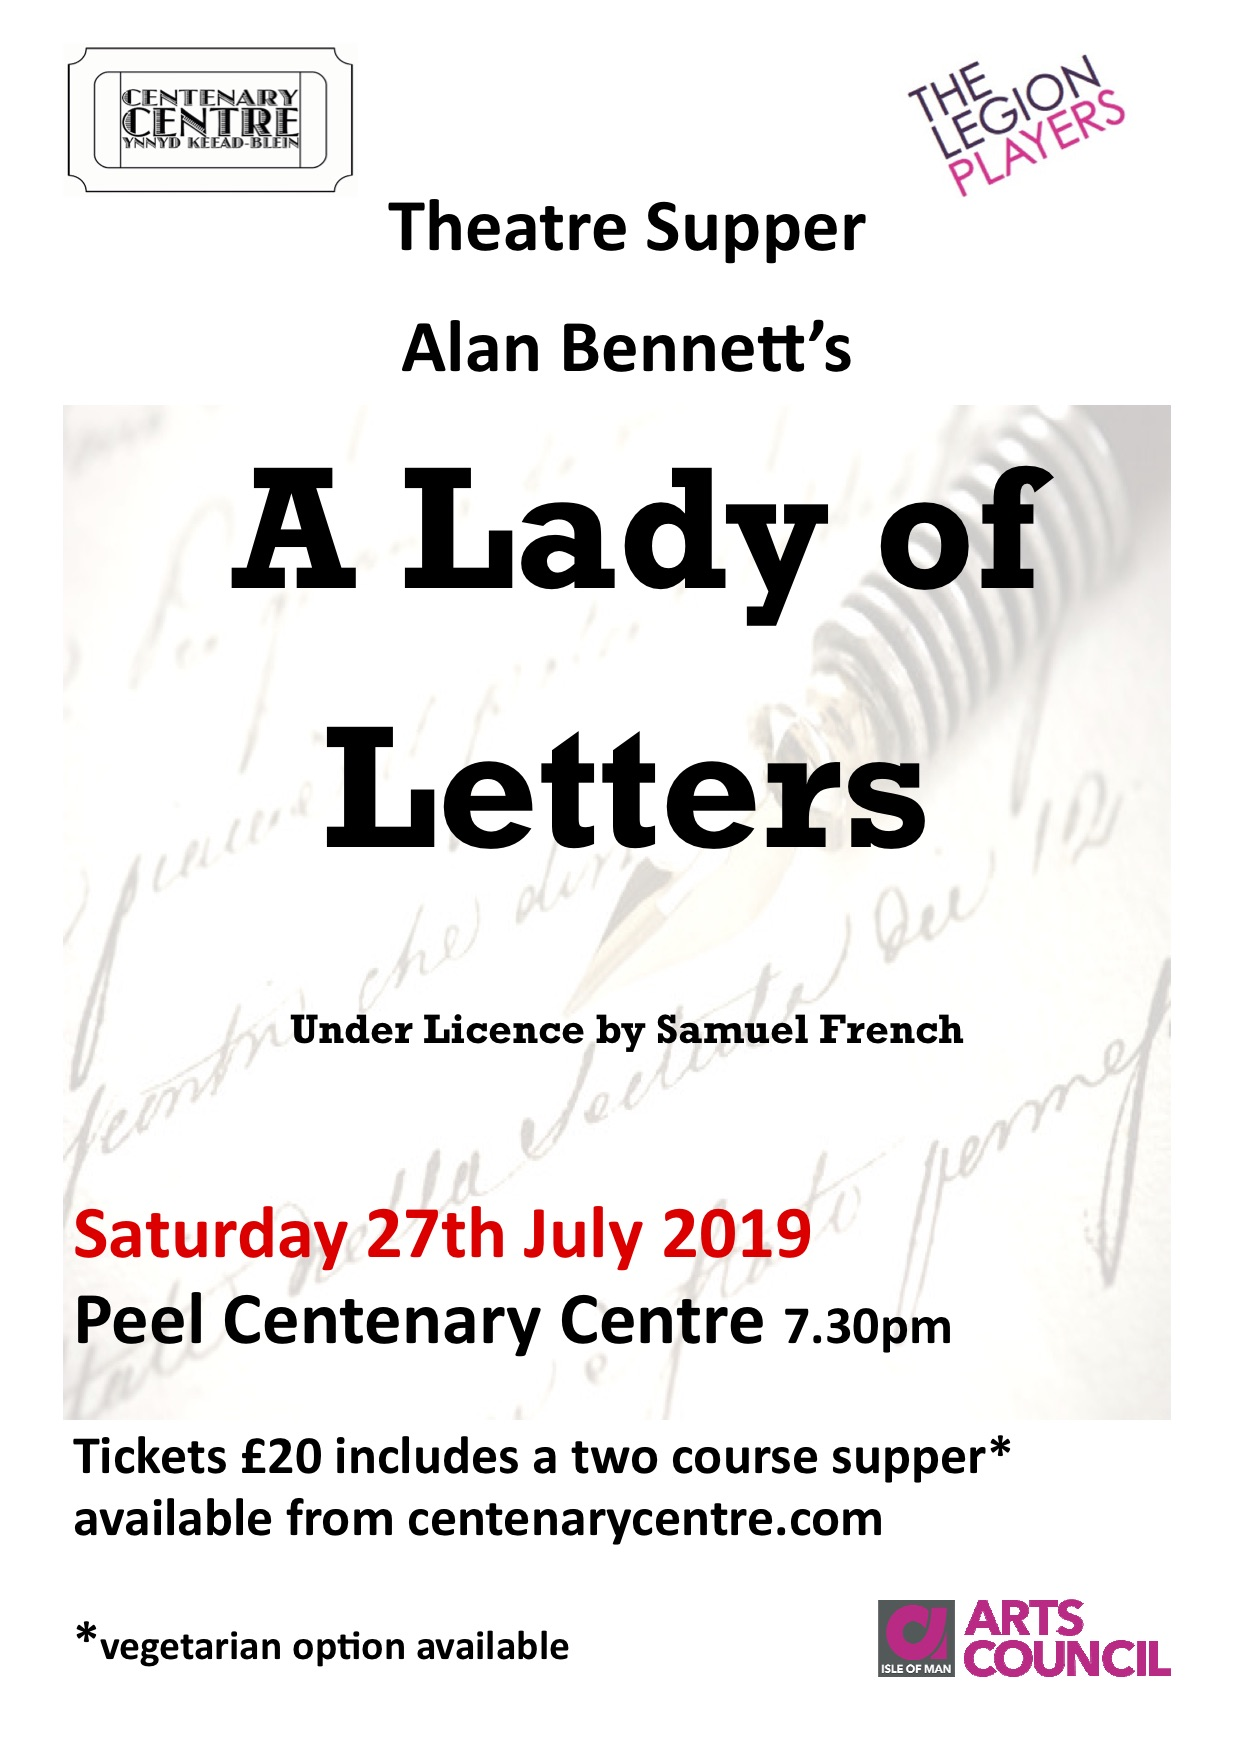 Theatre Supper - A Lady of Letters @ Peel Centenary Centre